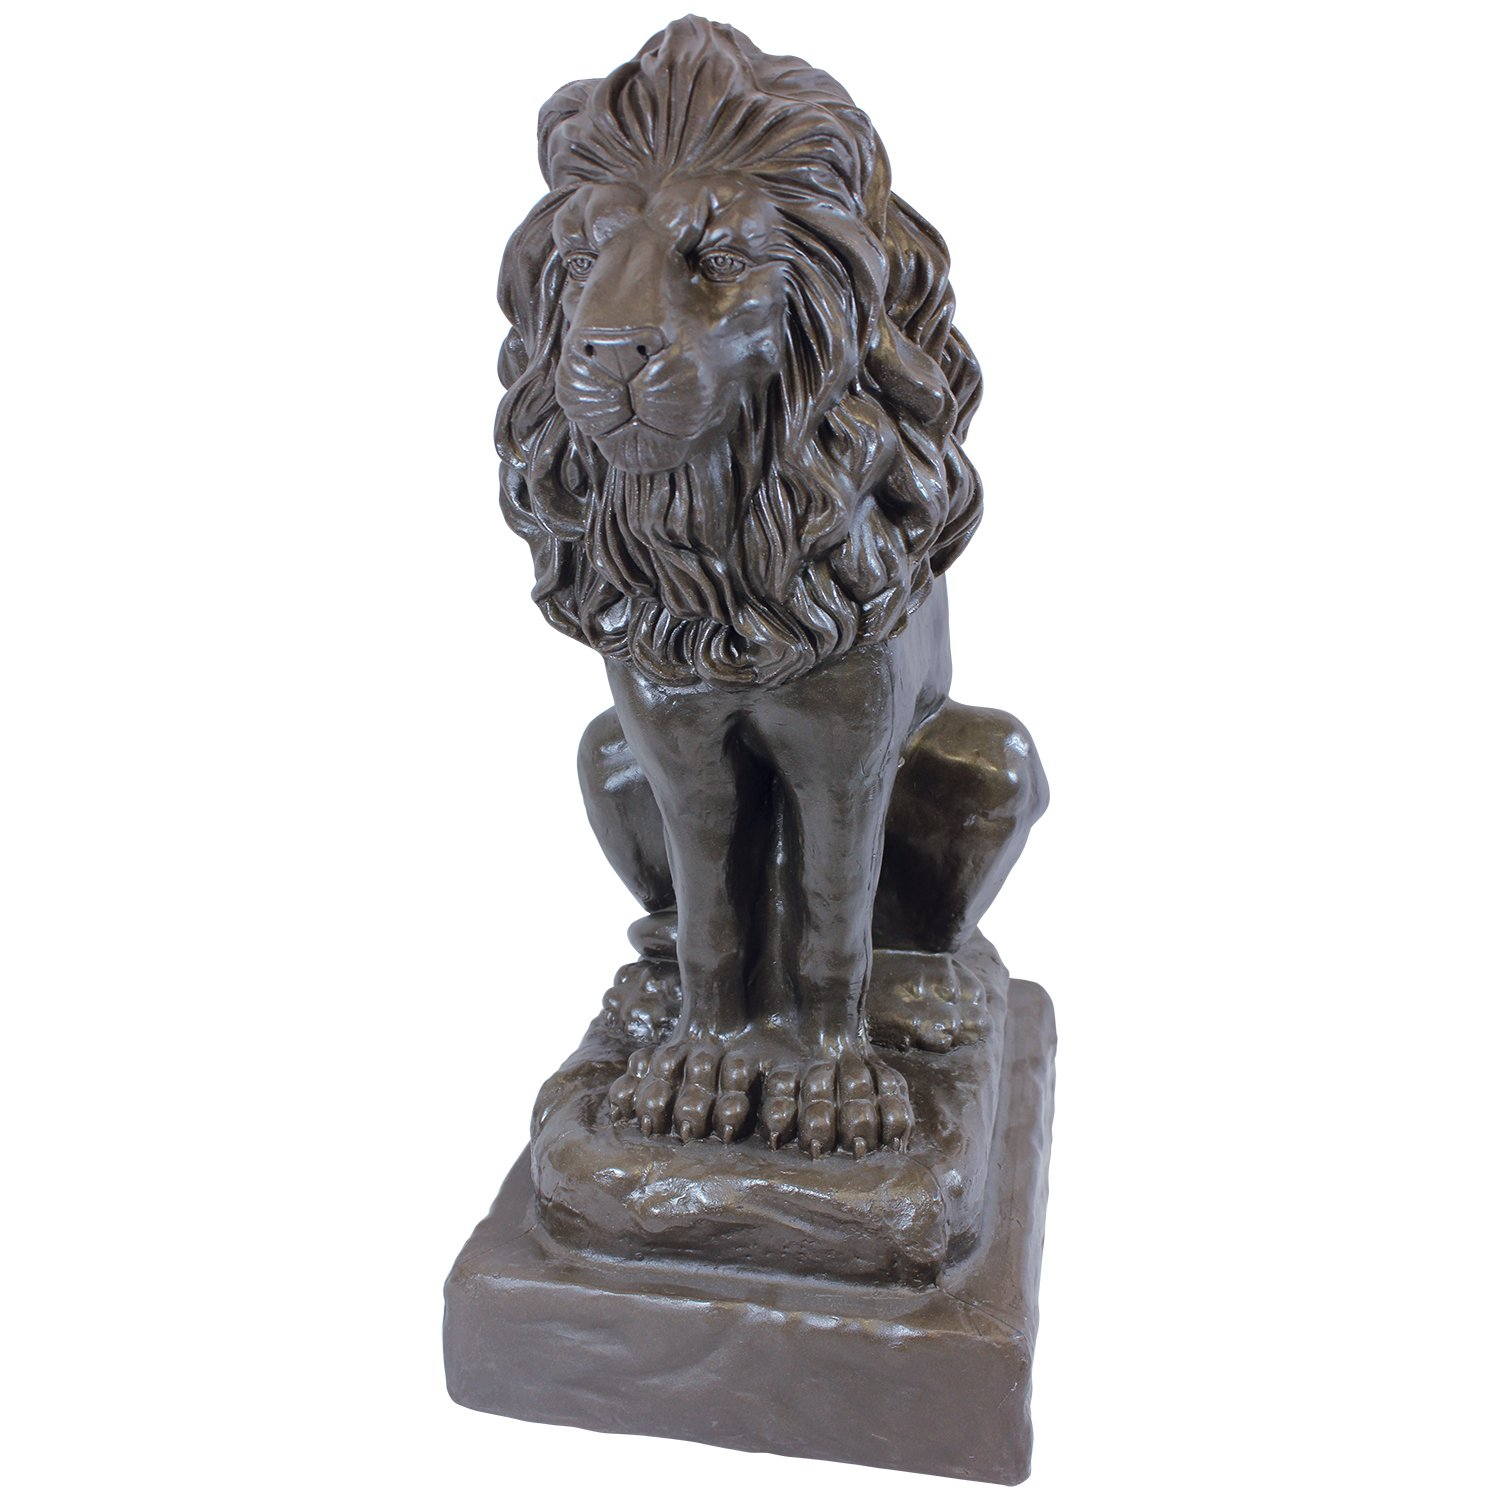 "Emsco Group 92210 Guardian Lion Statue – Natural Appearance – Made of Plastic Resin – Lightweight – 28"" Height Garden, BRONZE by Emsco Group"